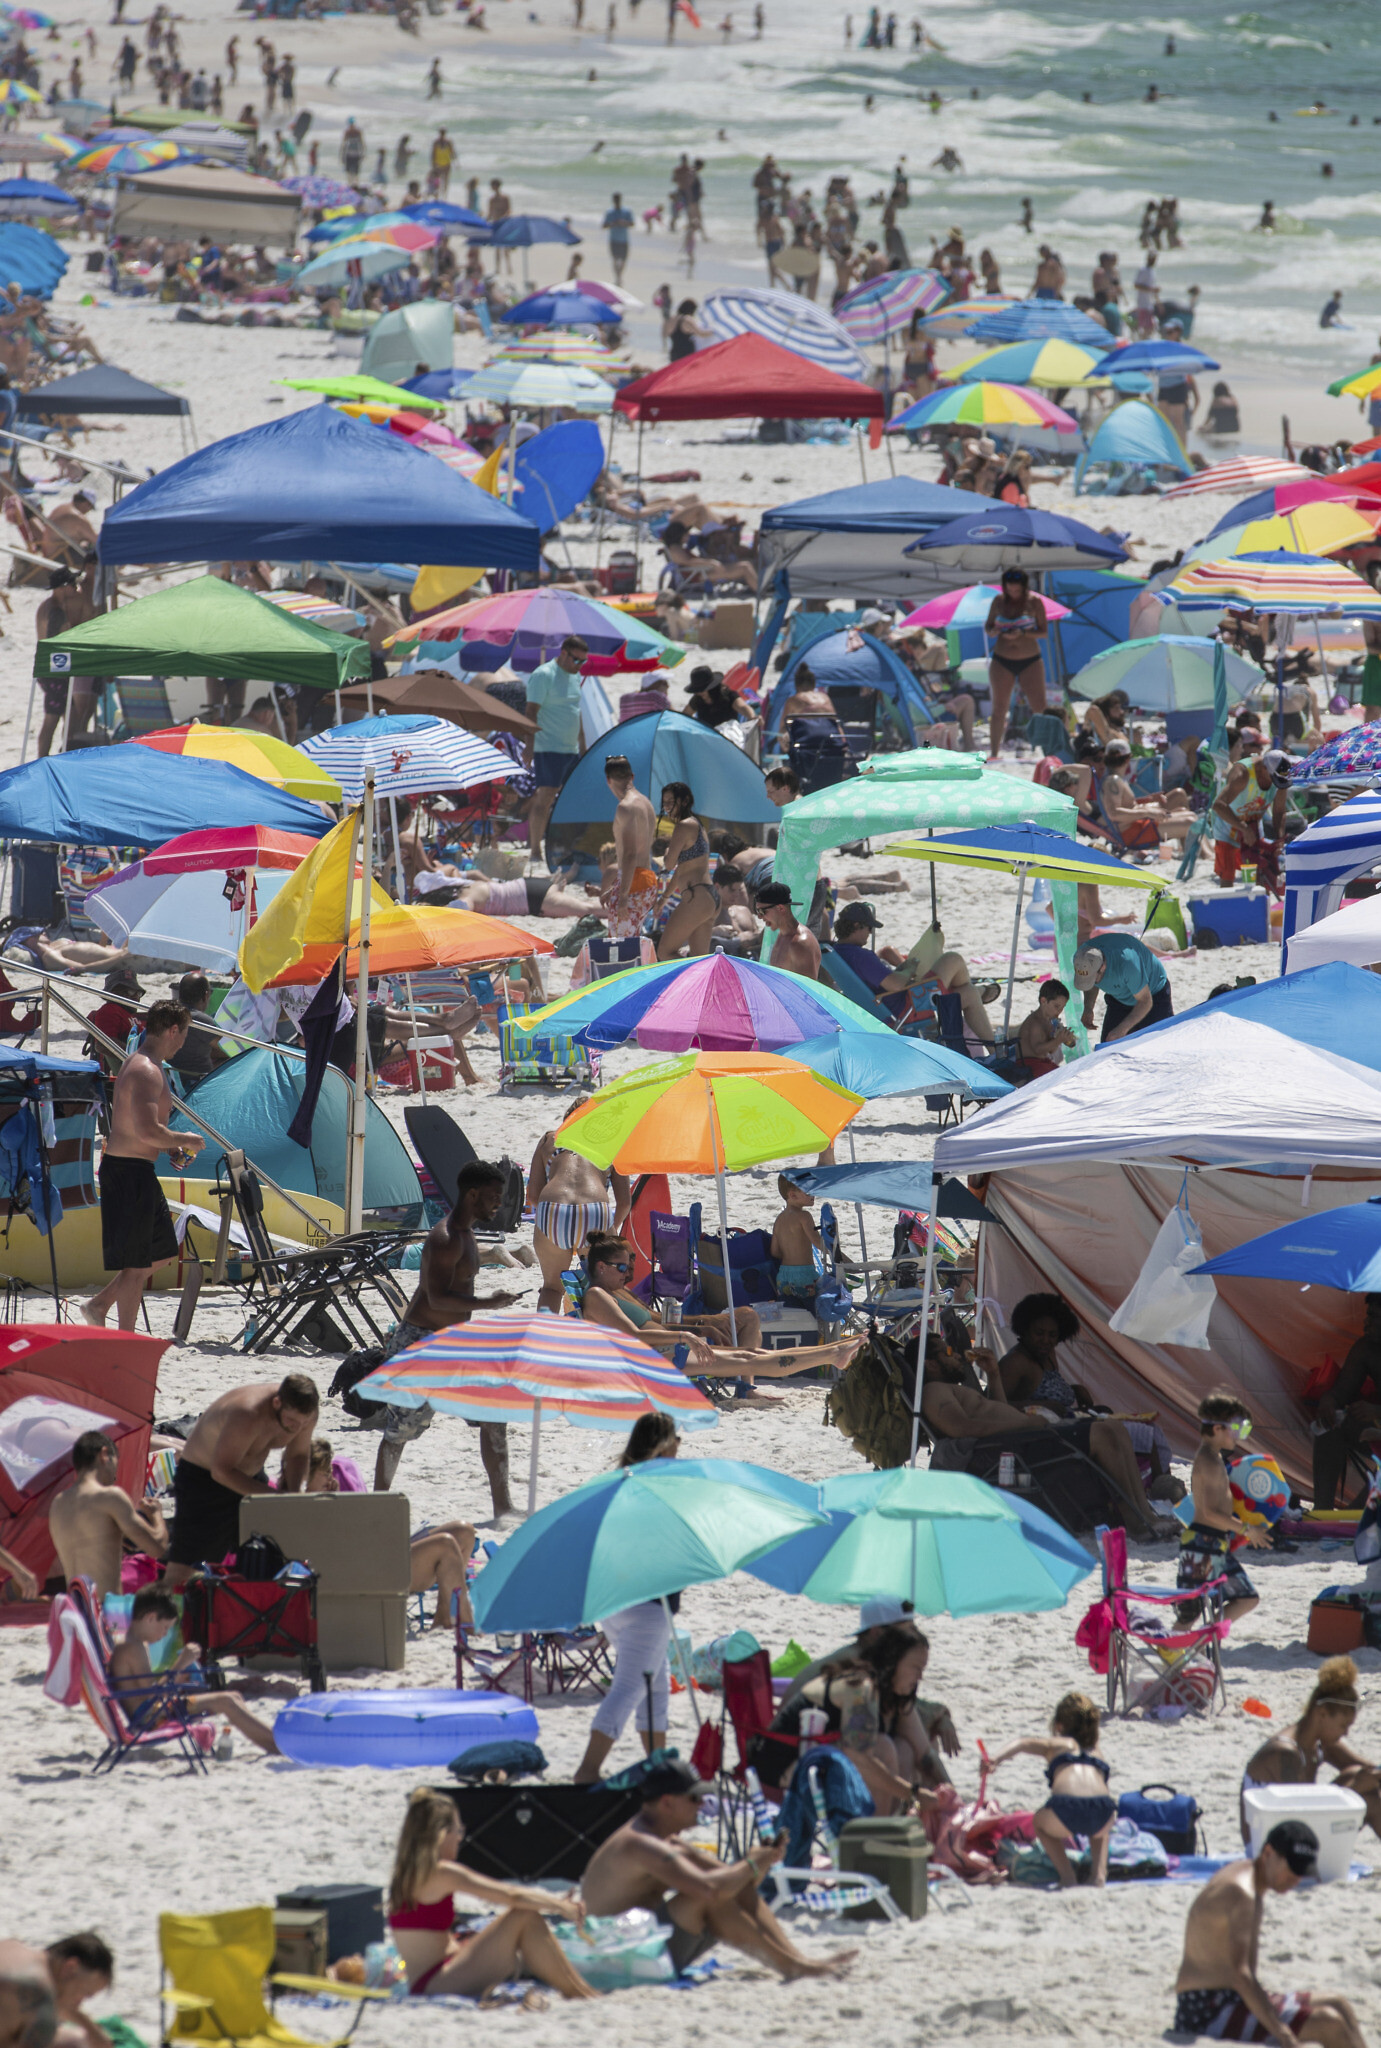 Memorial Day Weekend Draws Crowds